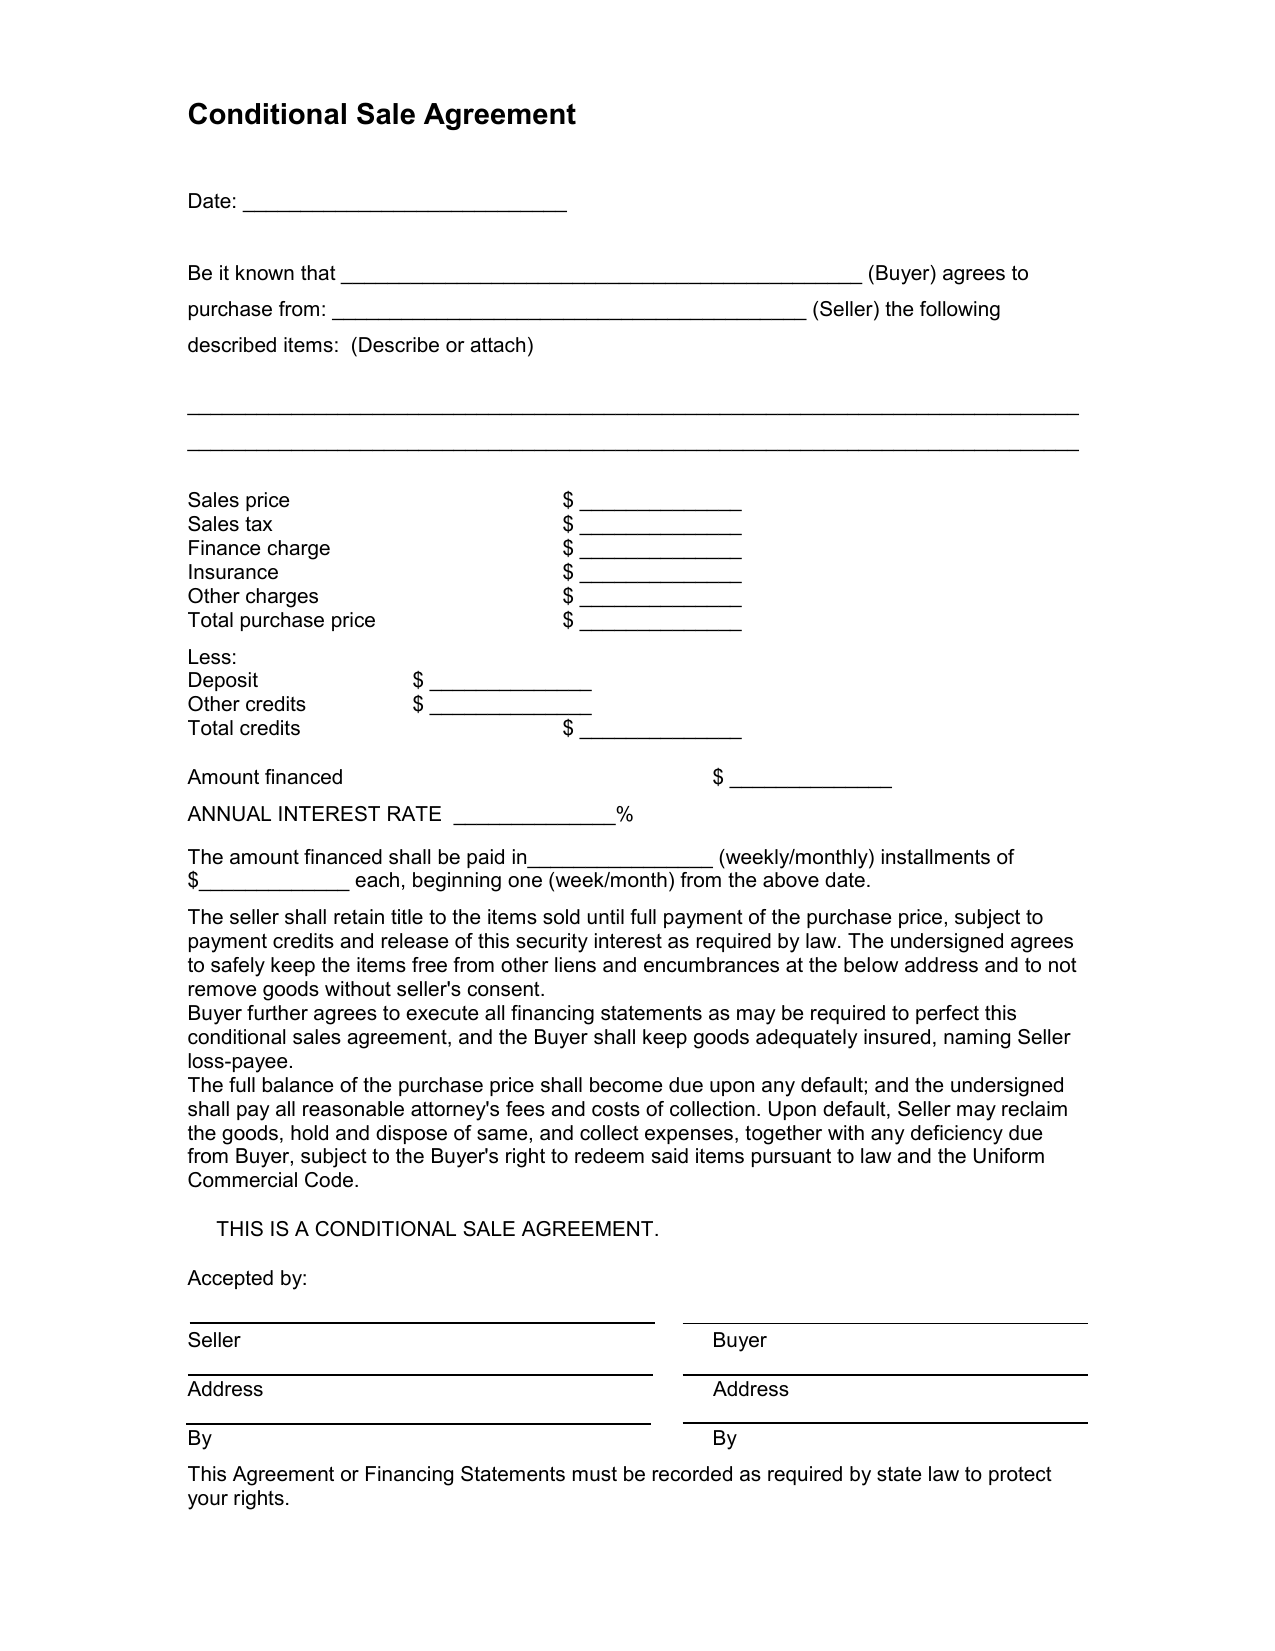 Conditional Sale Agreement